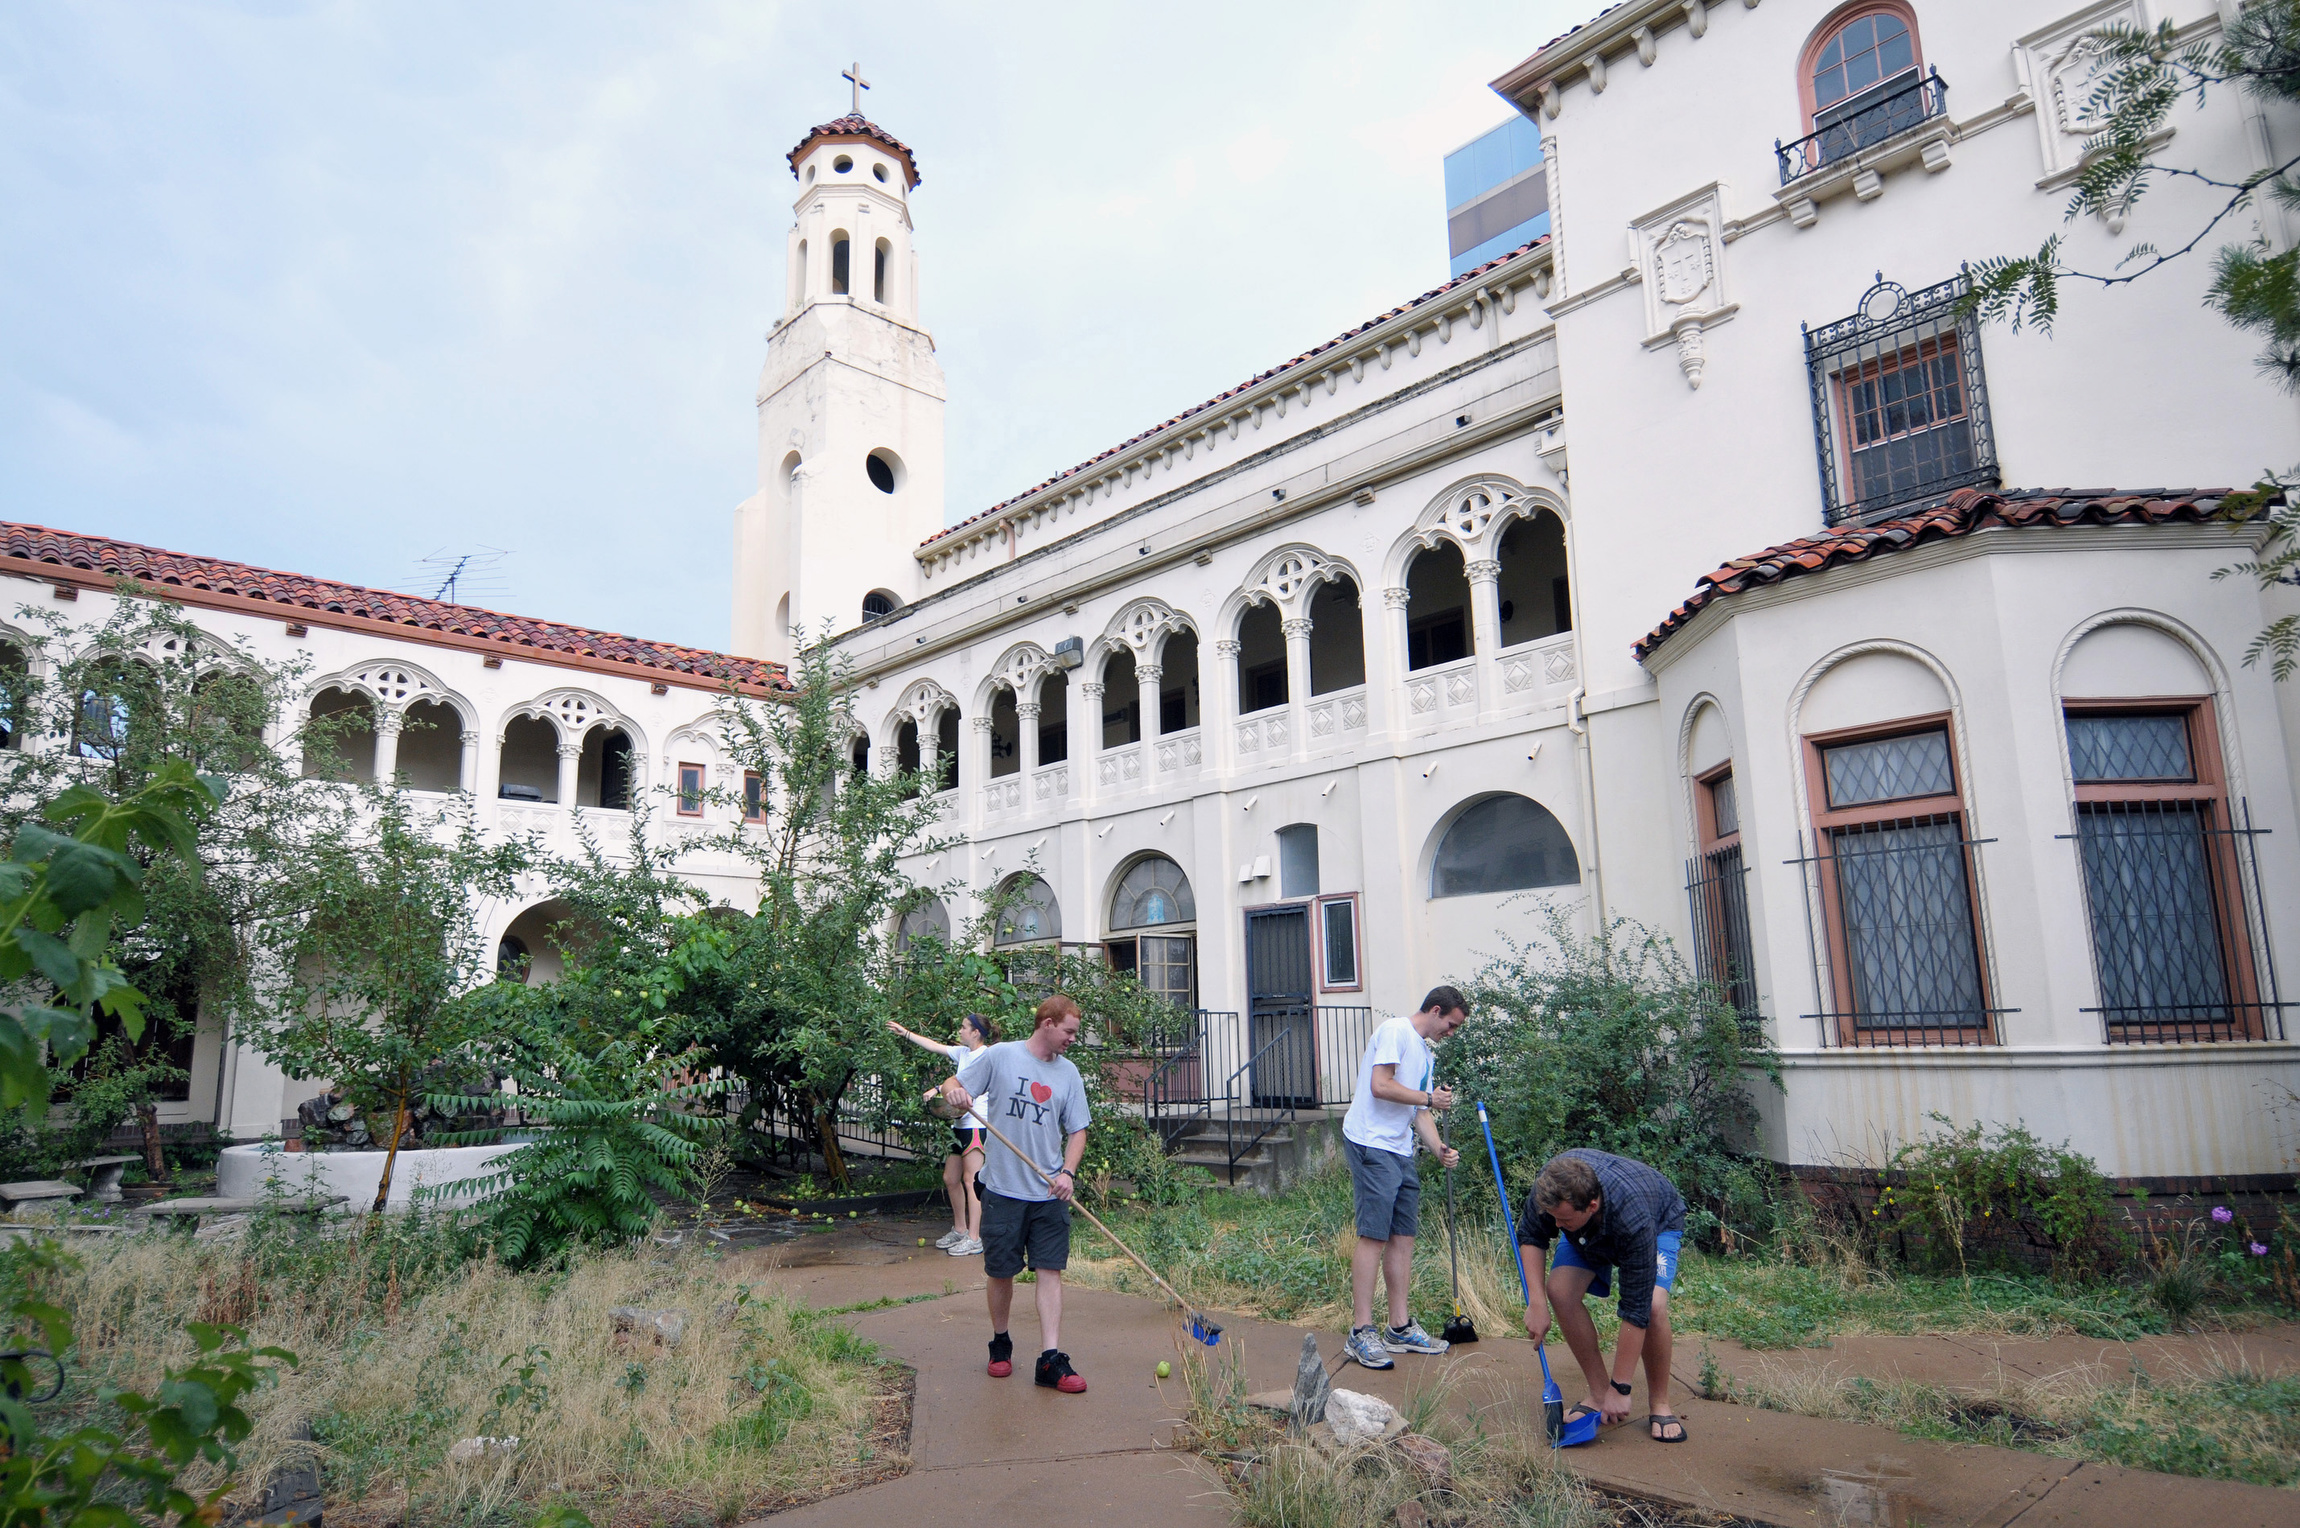 Open the Doors: Vacant convents offer a new opportunity for